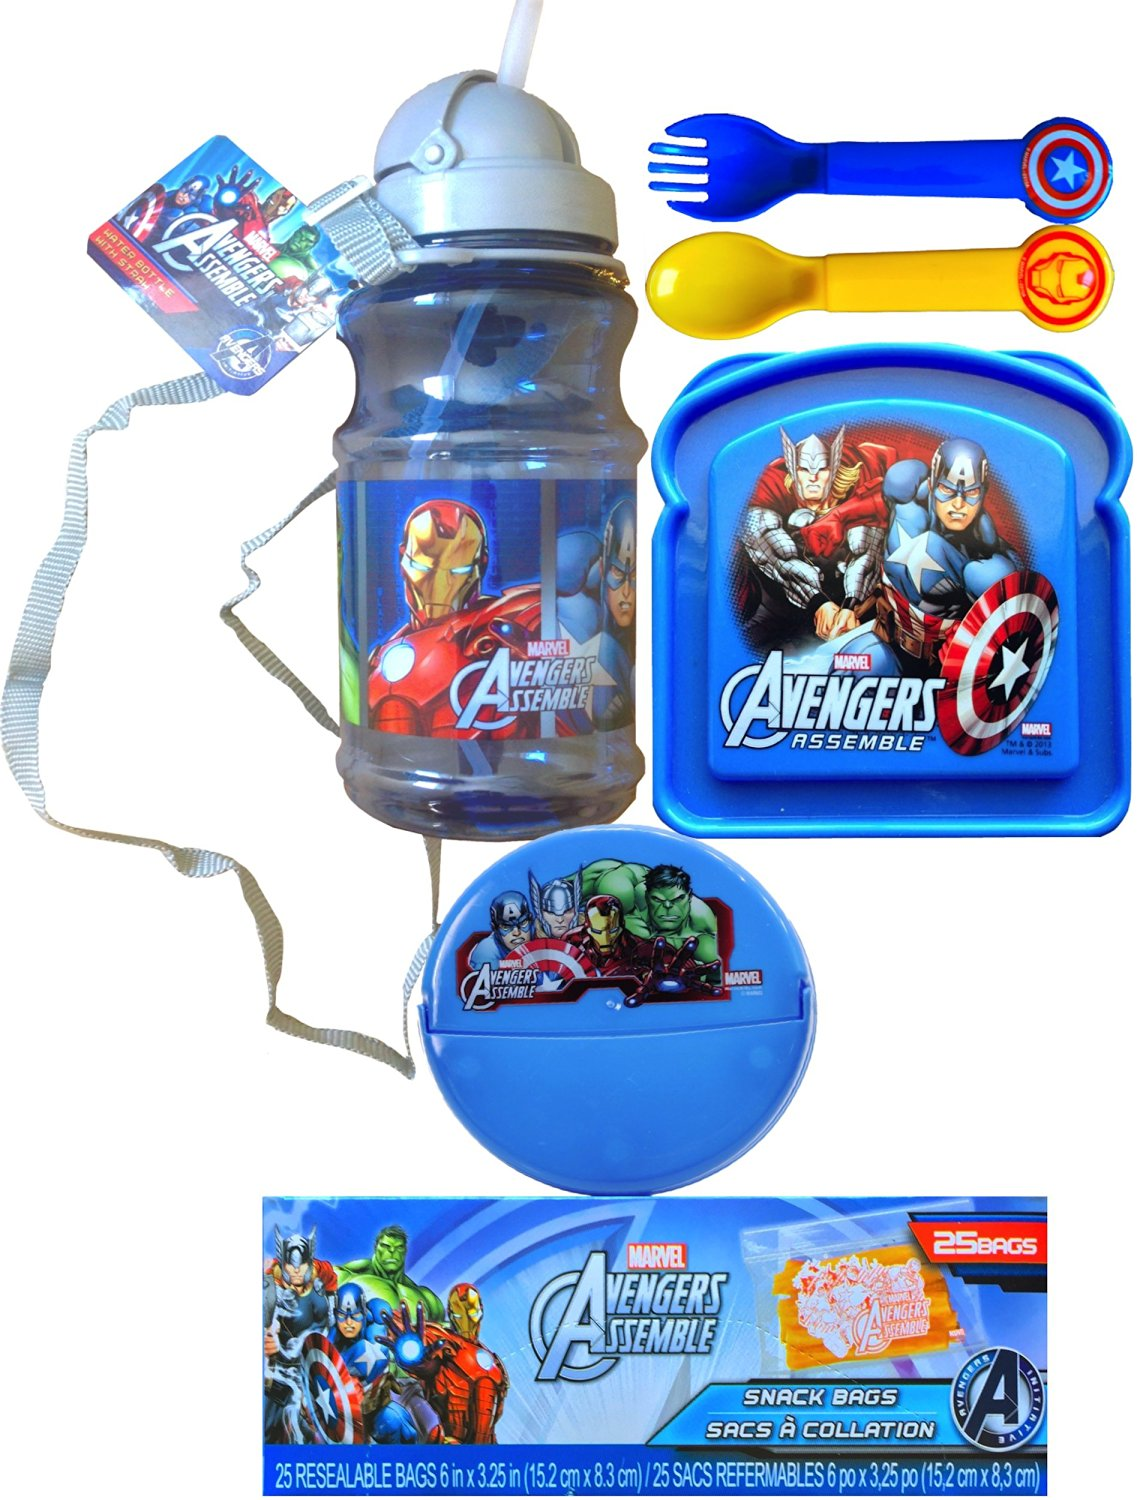 Marvel Avengers Assemble 6 Piece Lunch Kit Includes Water Bottle with Strap, Marvel Avengers Sandwich and Snack Container with Utensils and Marvel Avengers Snack Bags Back to School Lunch Gift Set